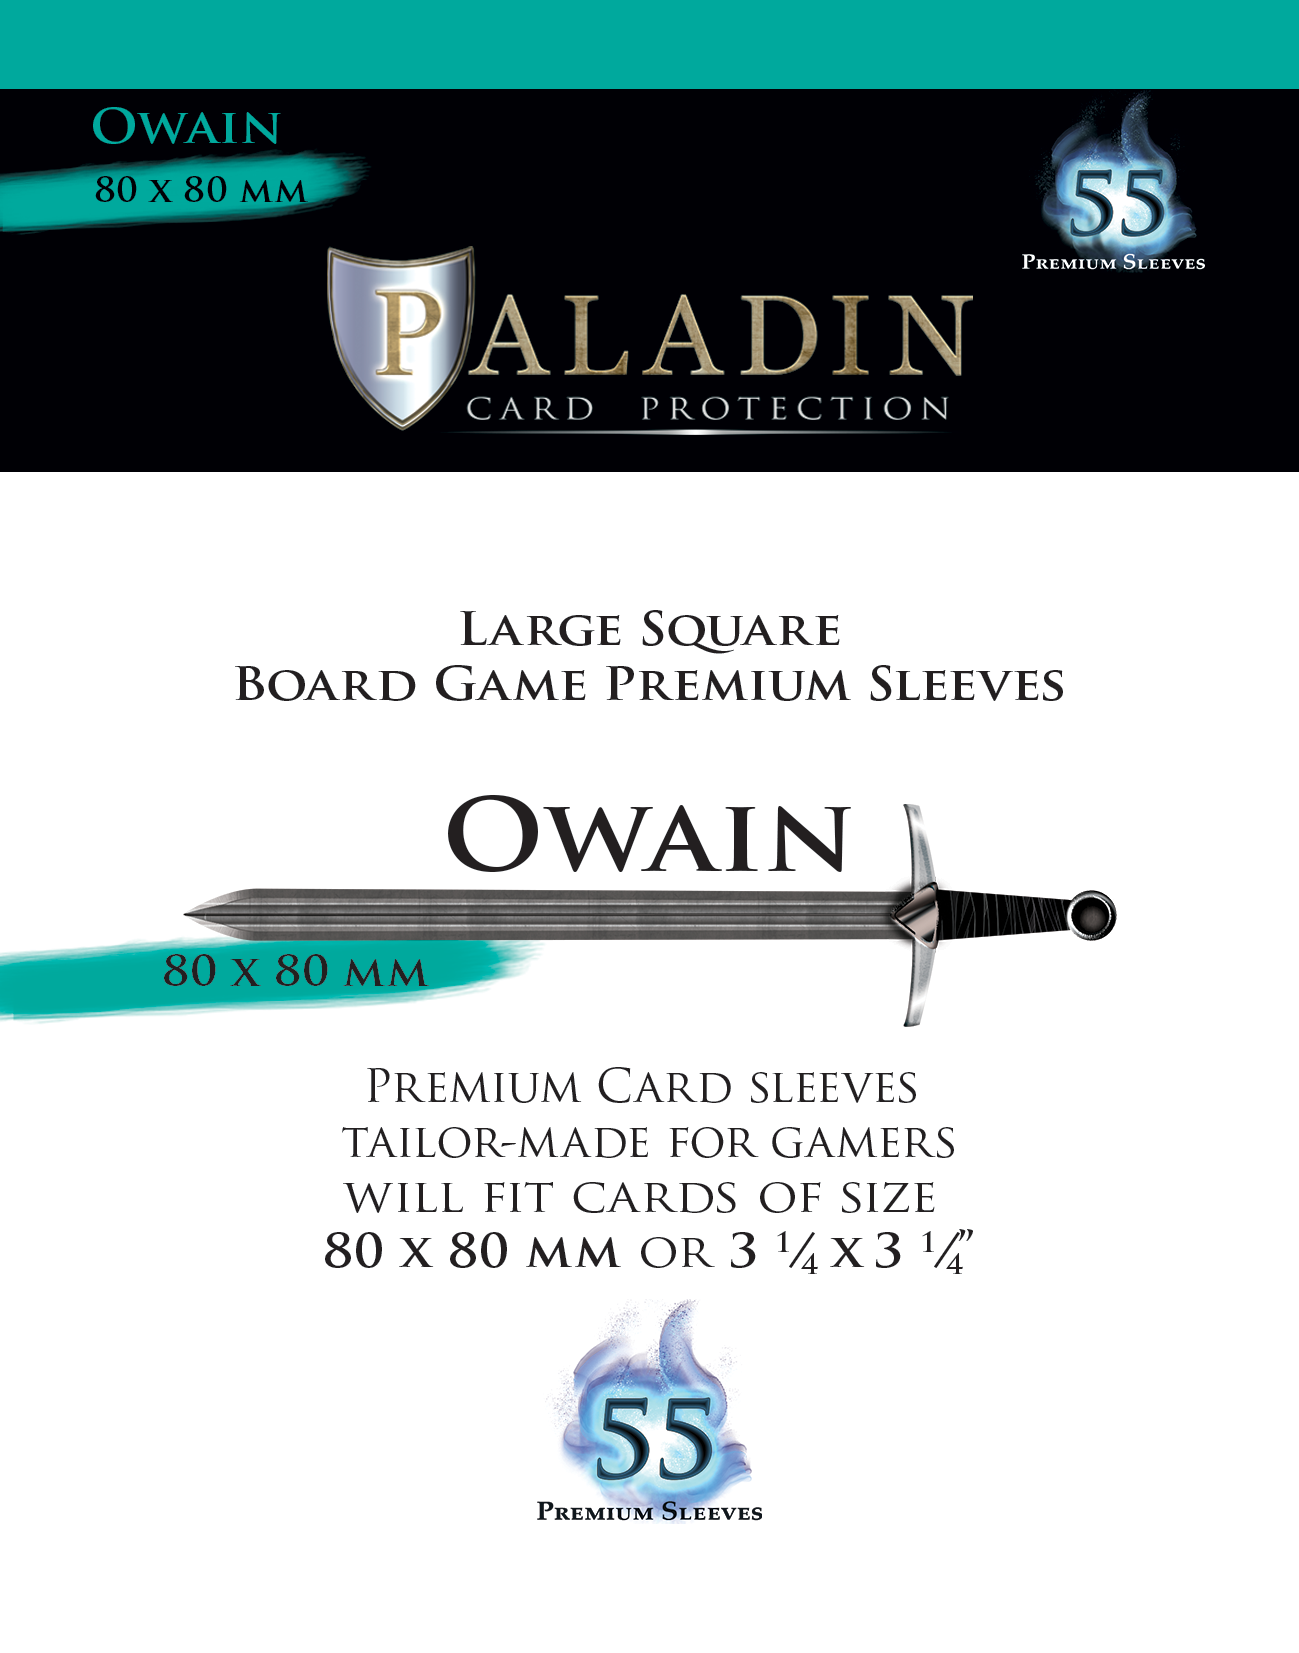 Paladin-Owain «Large Square» 80mm X 80mm / 55 Sleeves